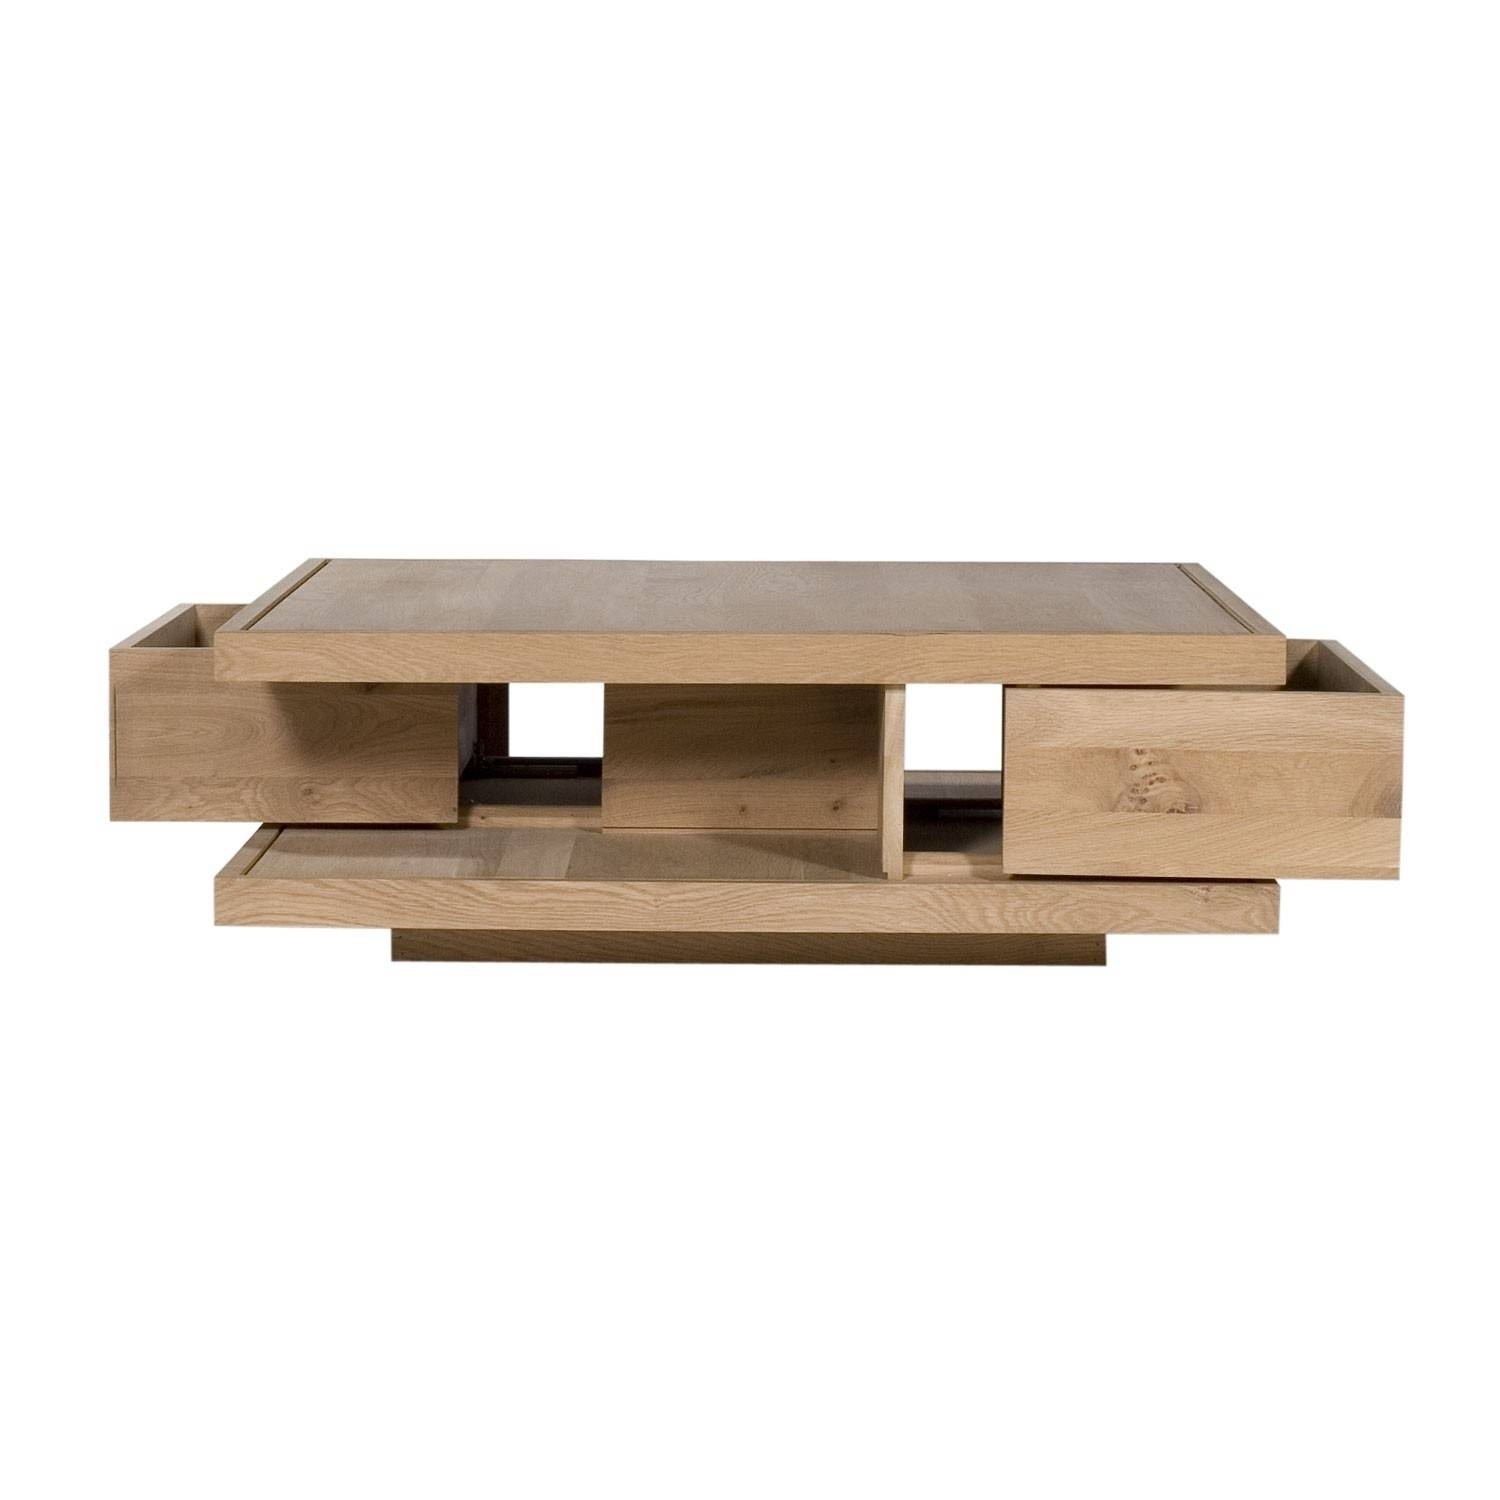 Oak Coffee Table Sets / Coffee Tables / Thippo Throughout Oak Coffee Table Sets (View 24 of 30)